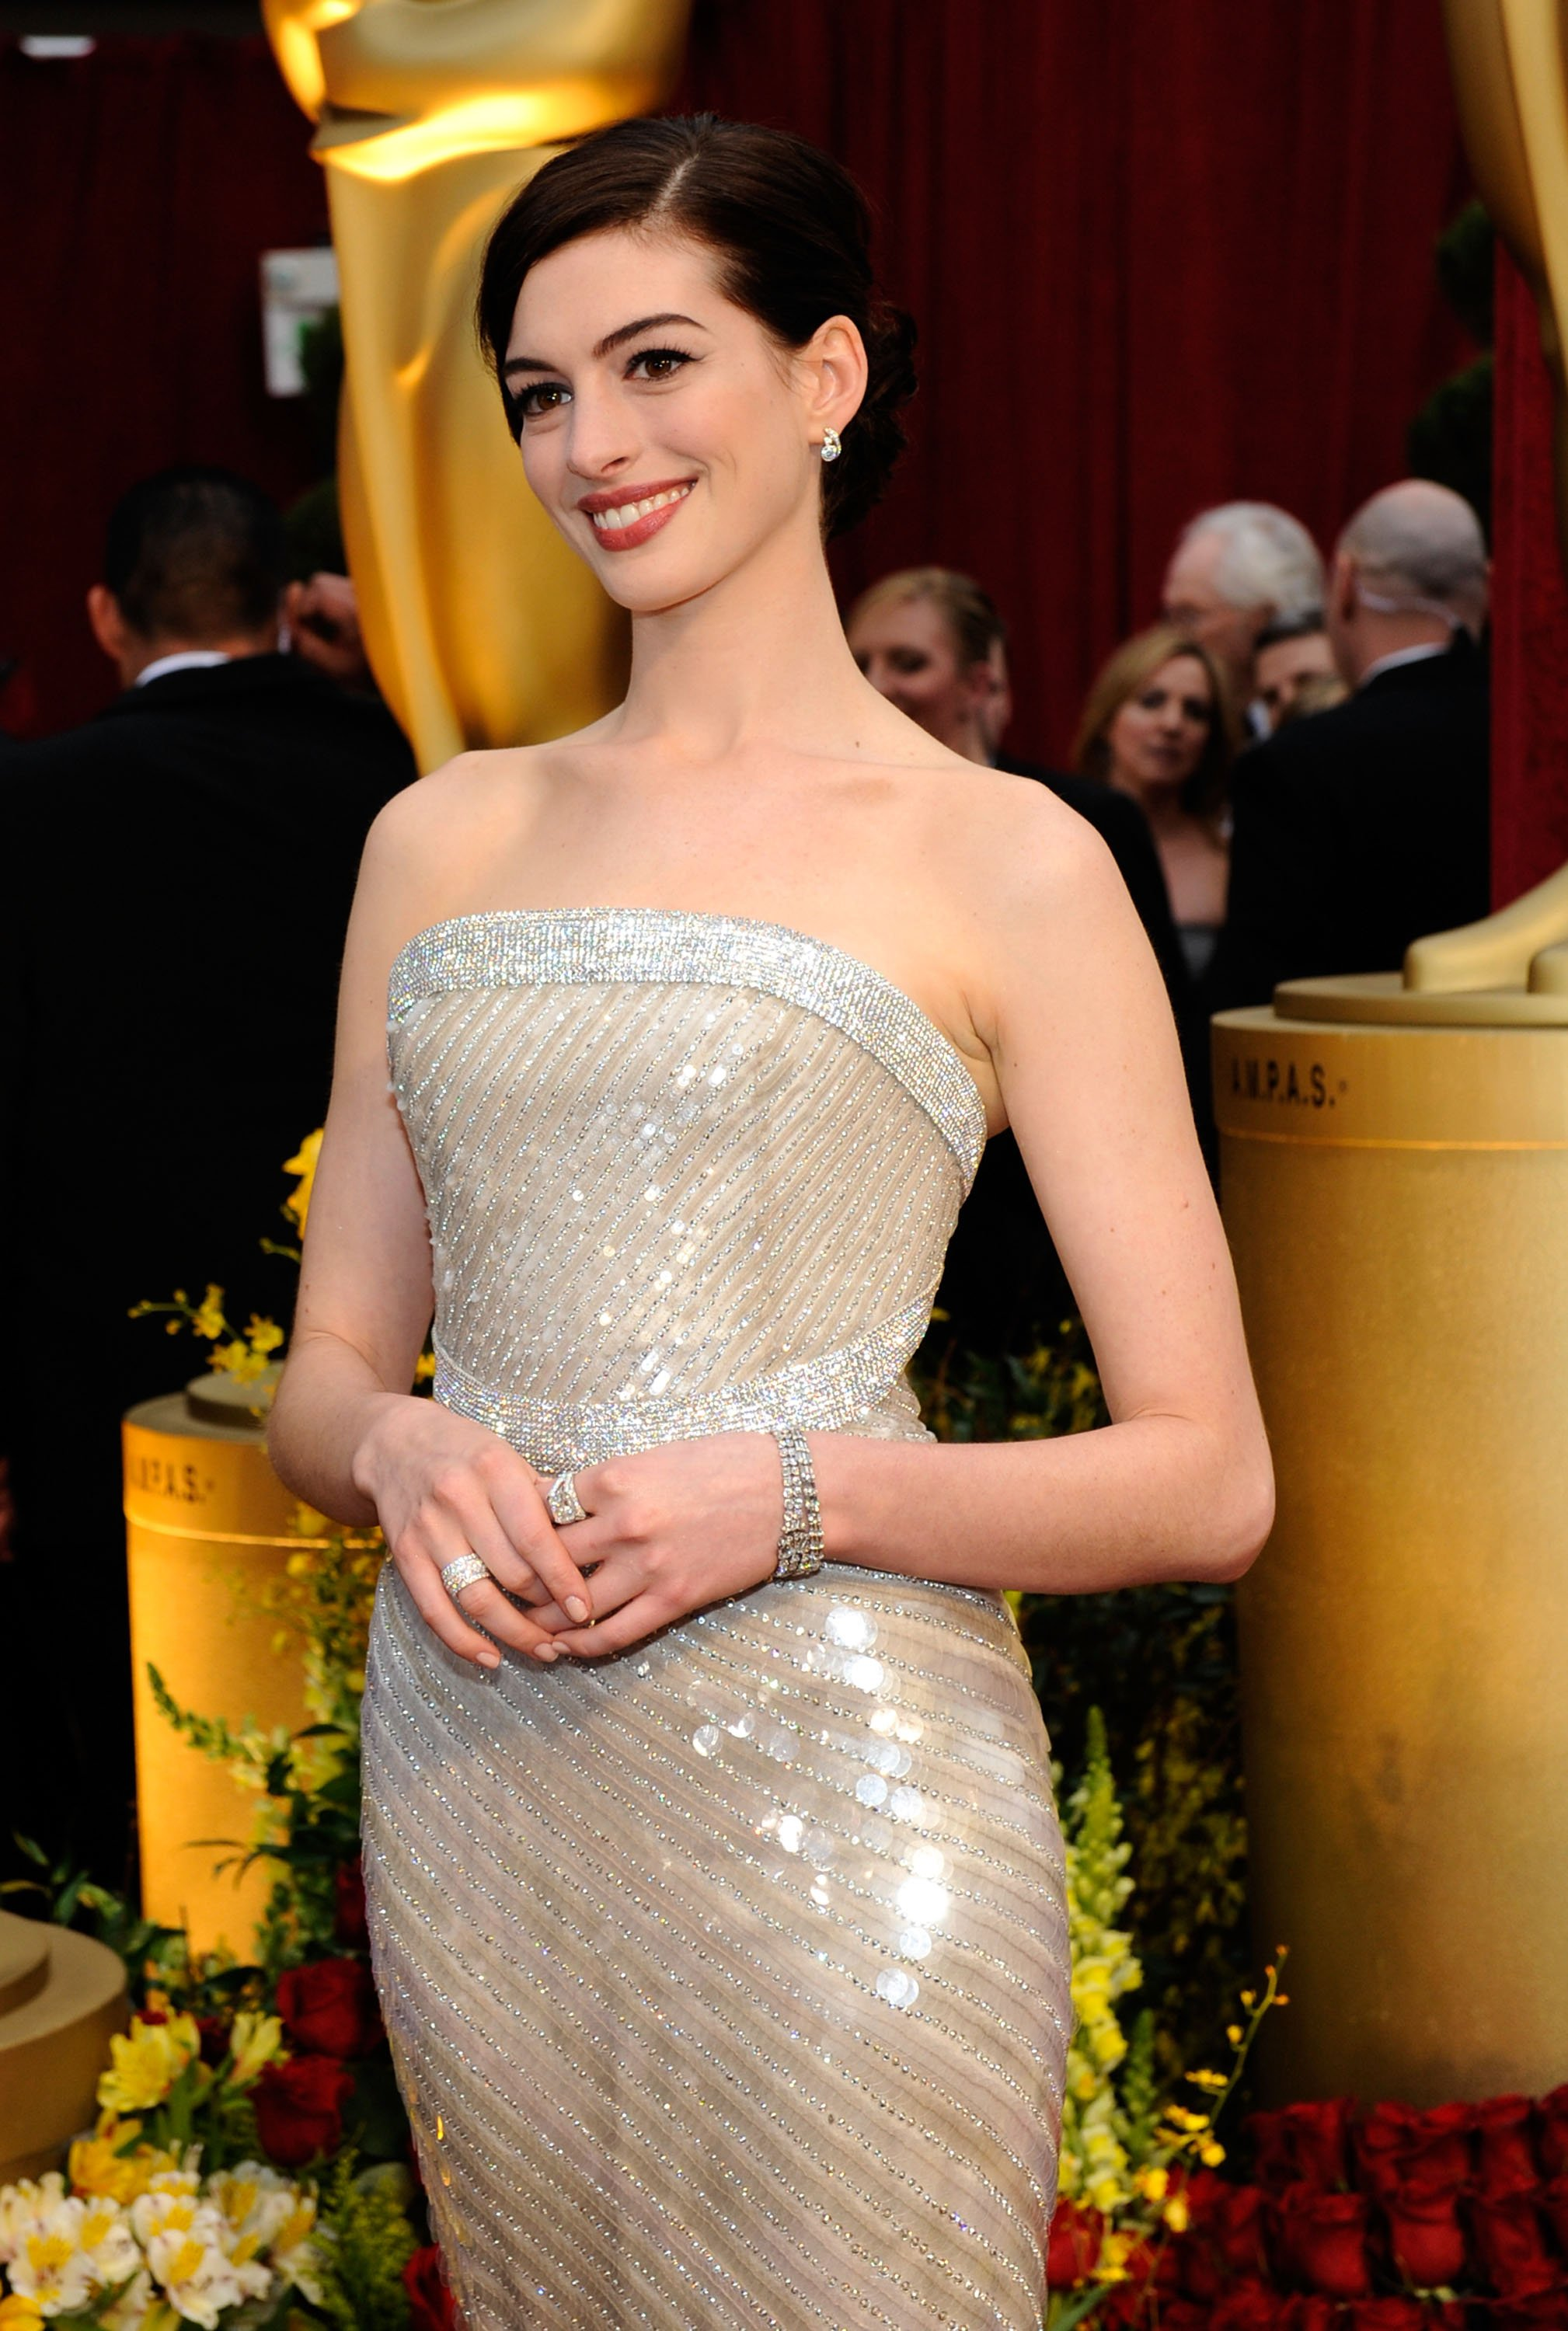 50188_celebutopia-anne_hathaway_arrives_at_the_81st_annual_academy_awards-04_123_57lo